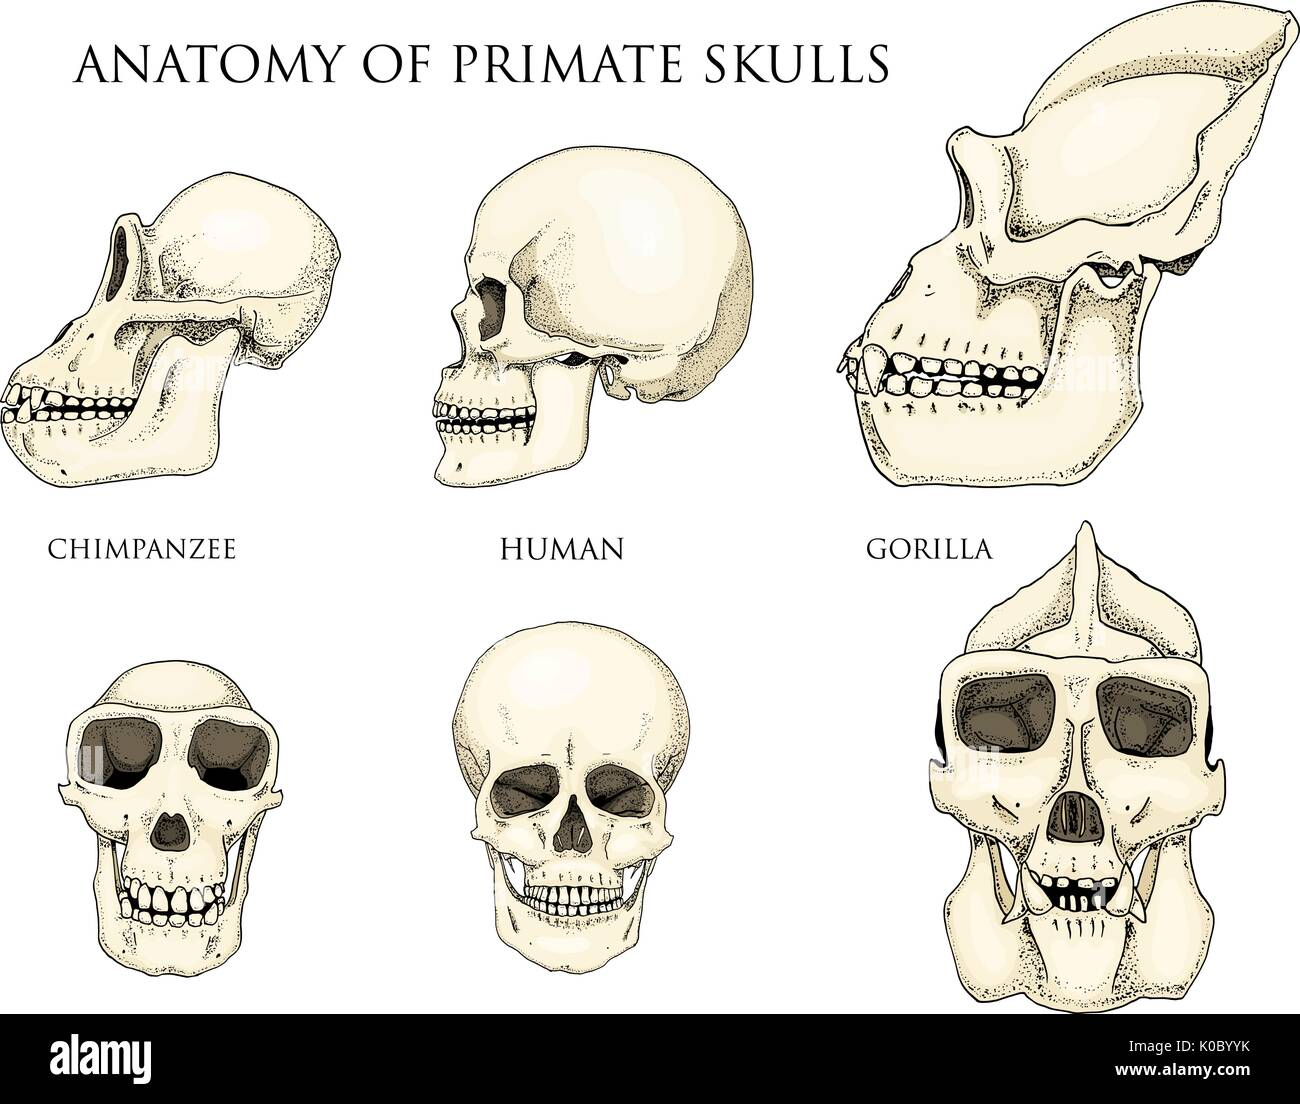 hight resolution of human and chimpanzee gorilla biology and anatomy illustration engraved hand drawn in old sketch and vintage style monkey skull or skeleton or bones